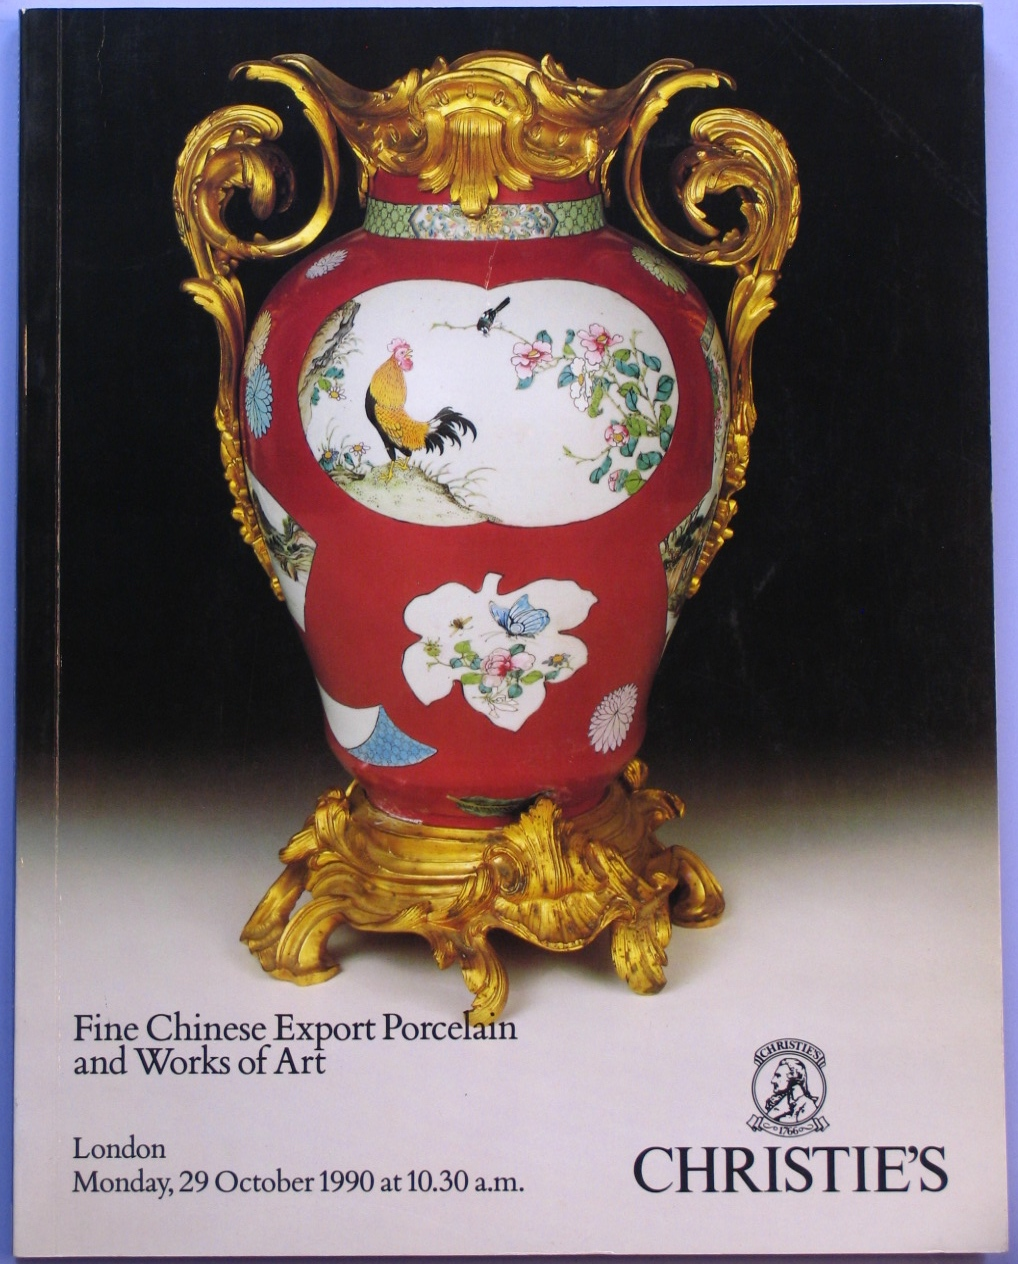 CL19901029: Bookshop: [1990] CHRISTIE'S FINE CHINESE EXPORT PORCELAIN AND WORKS OF ART